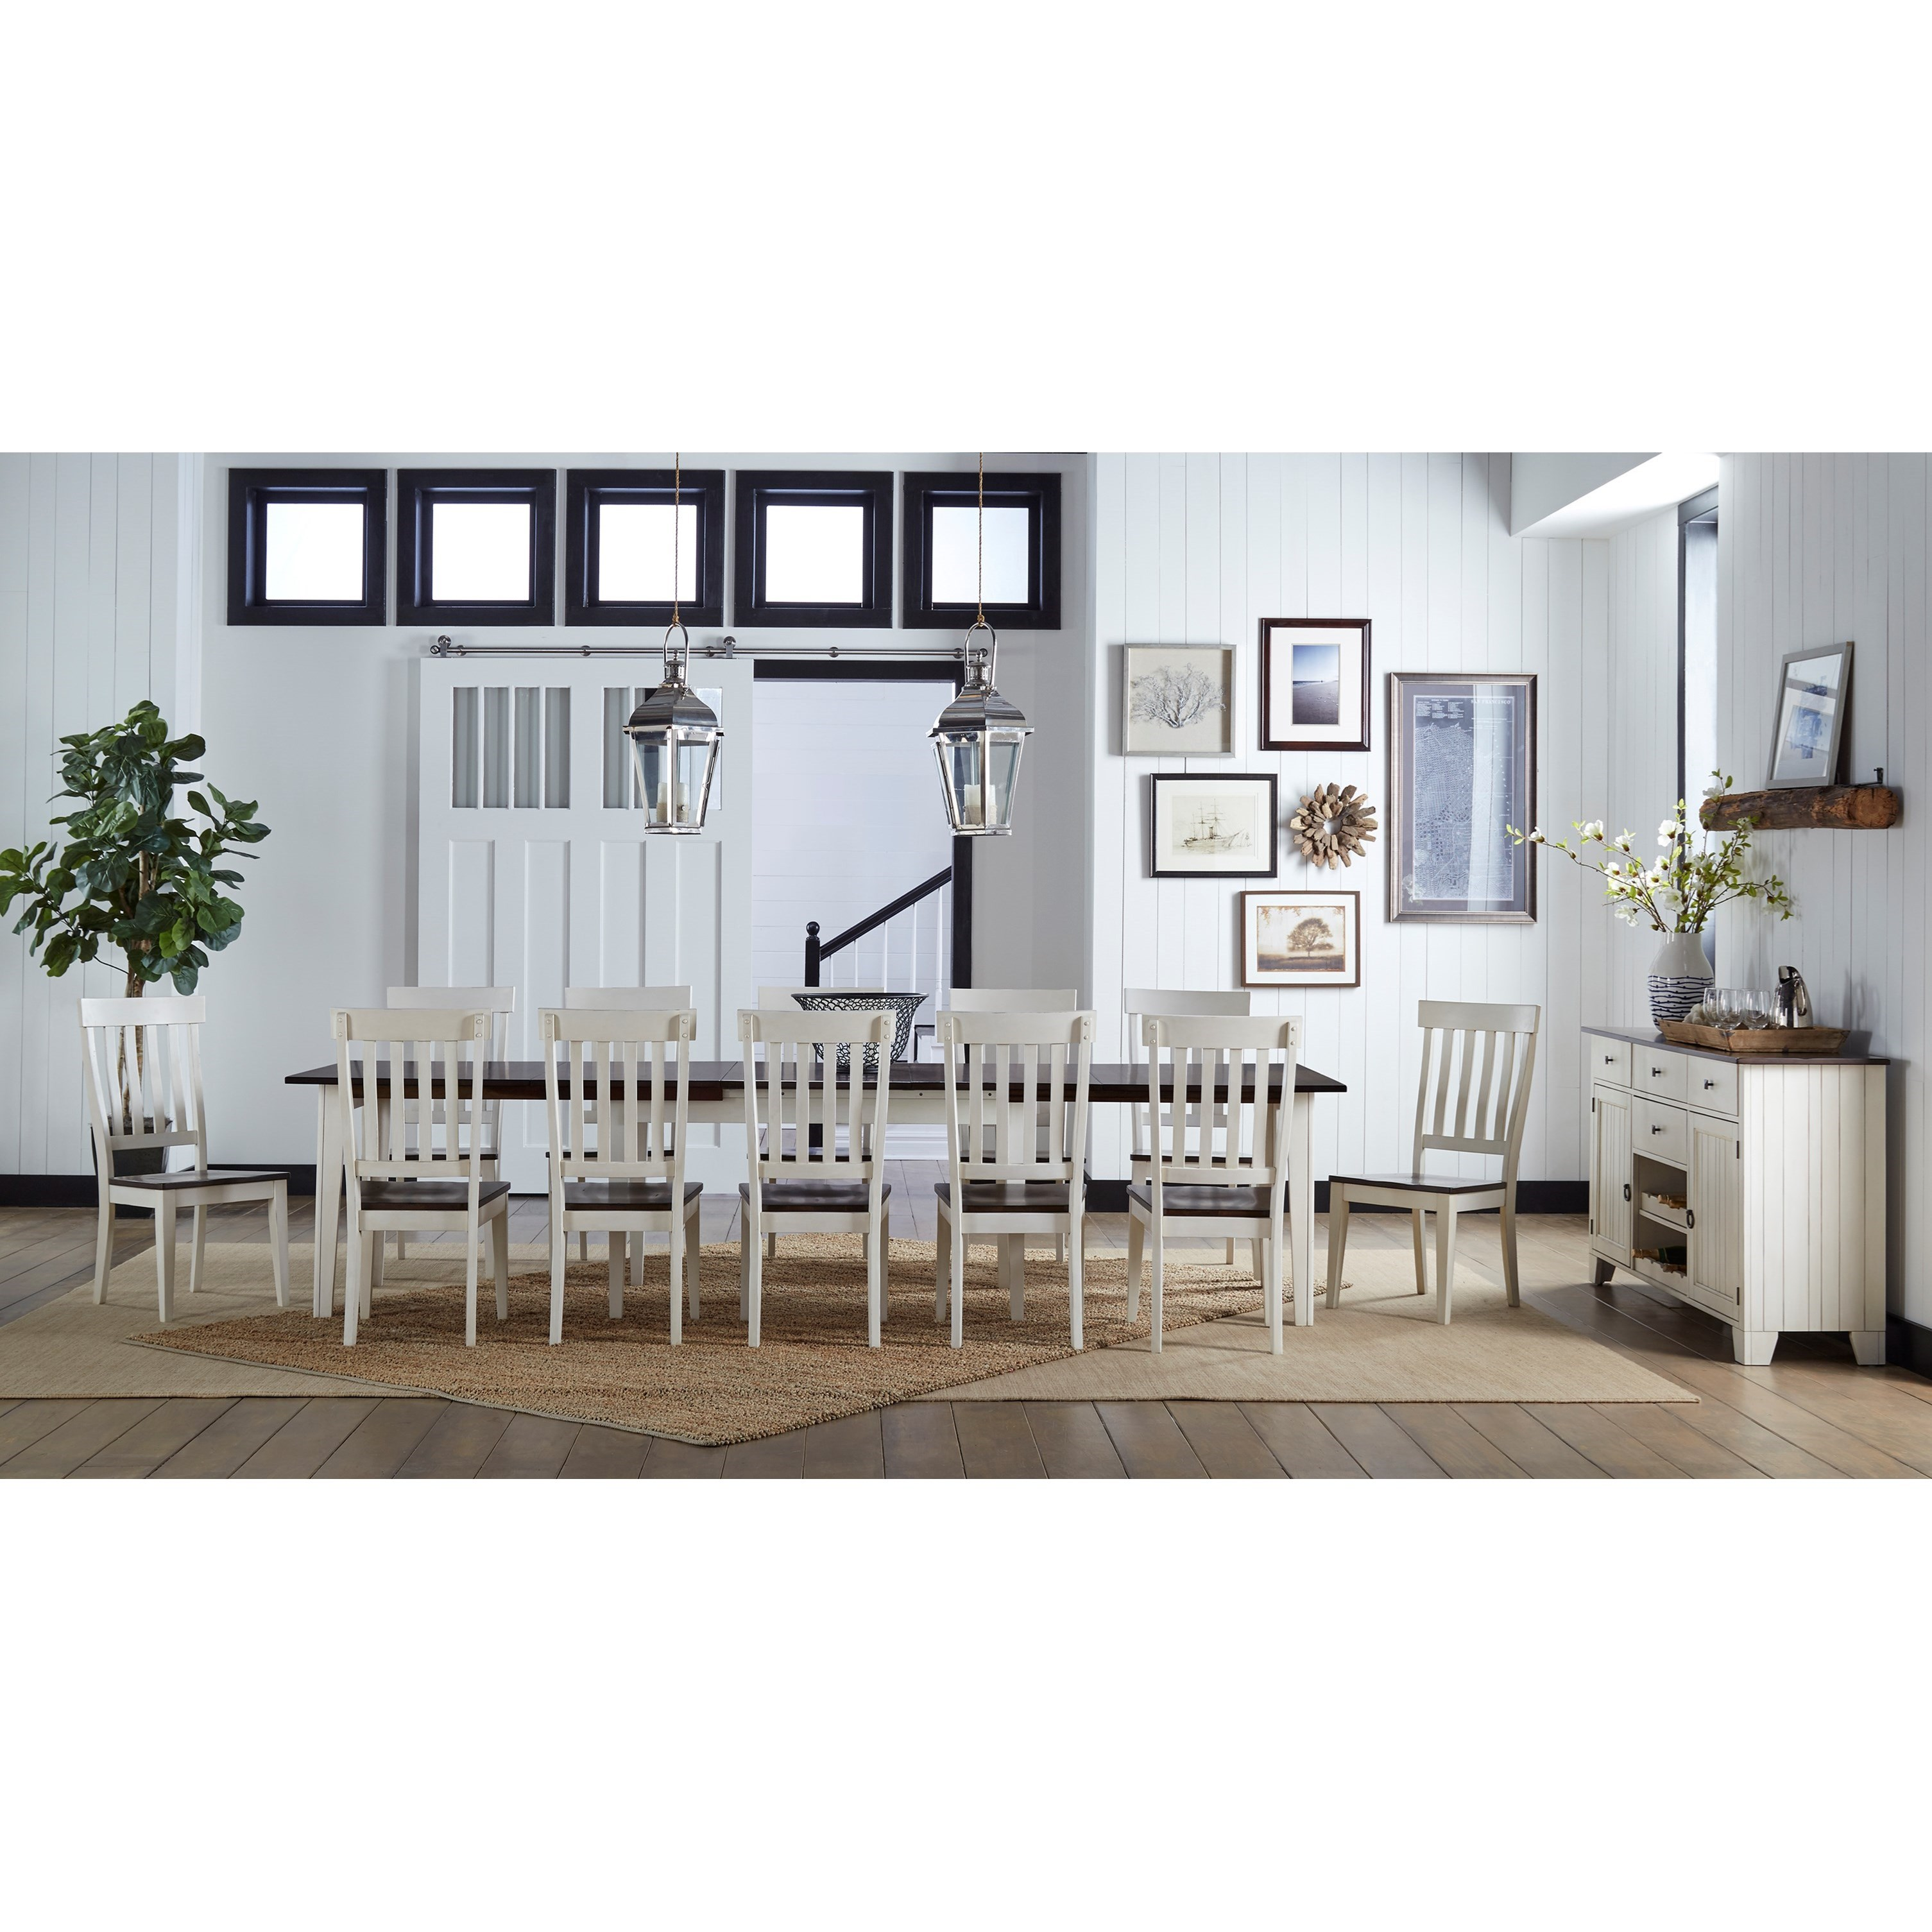 Aamerica Toluca Dining Room Group Value City Furniture Casual Dining Room Groups